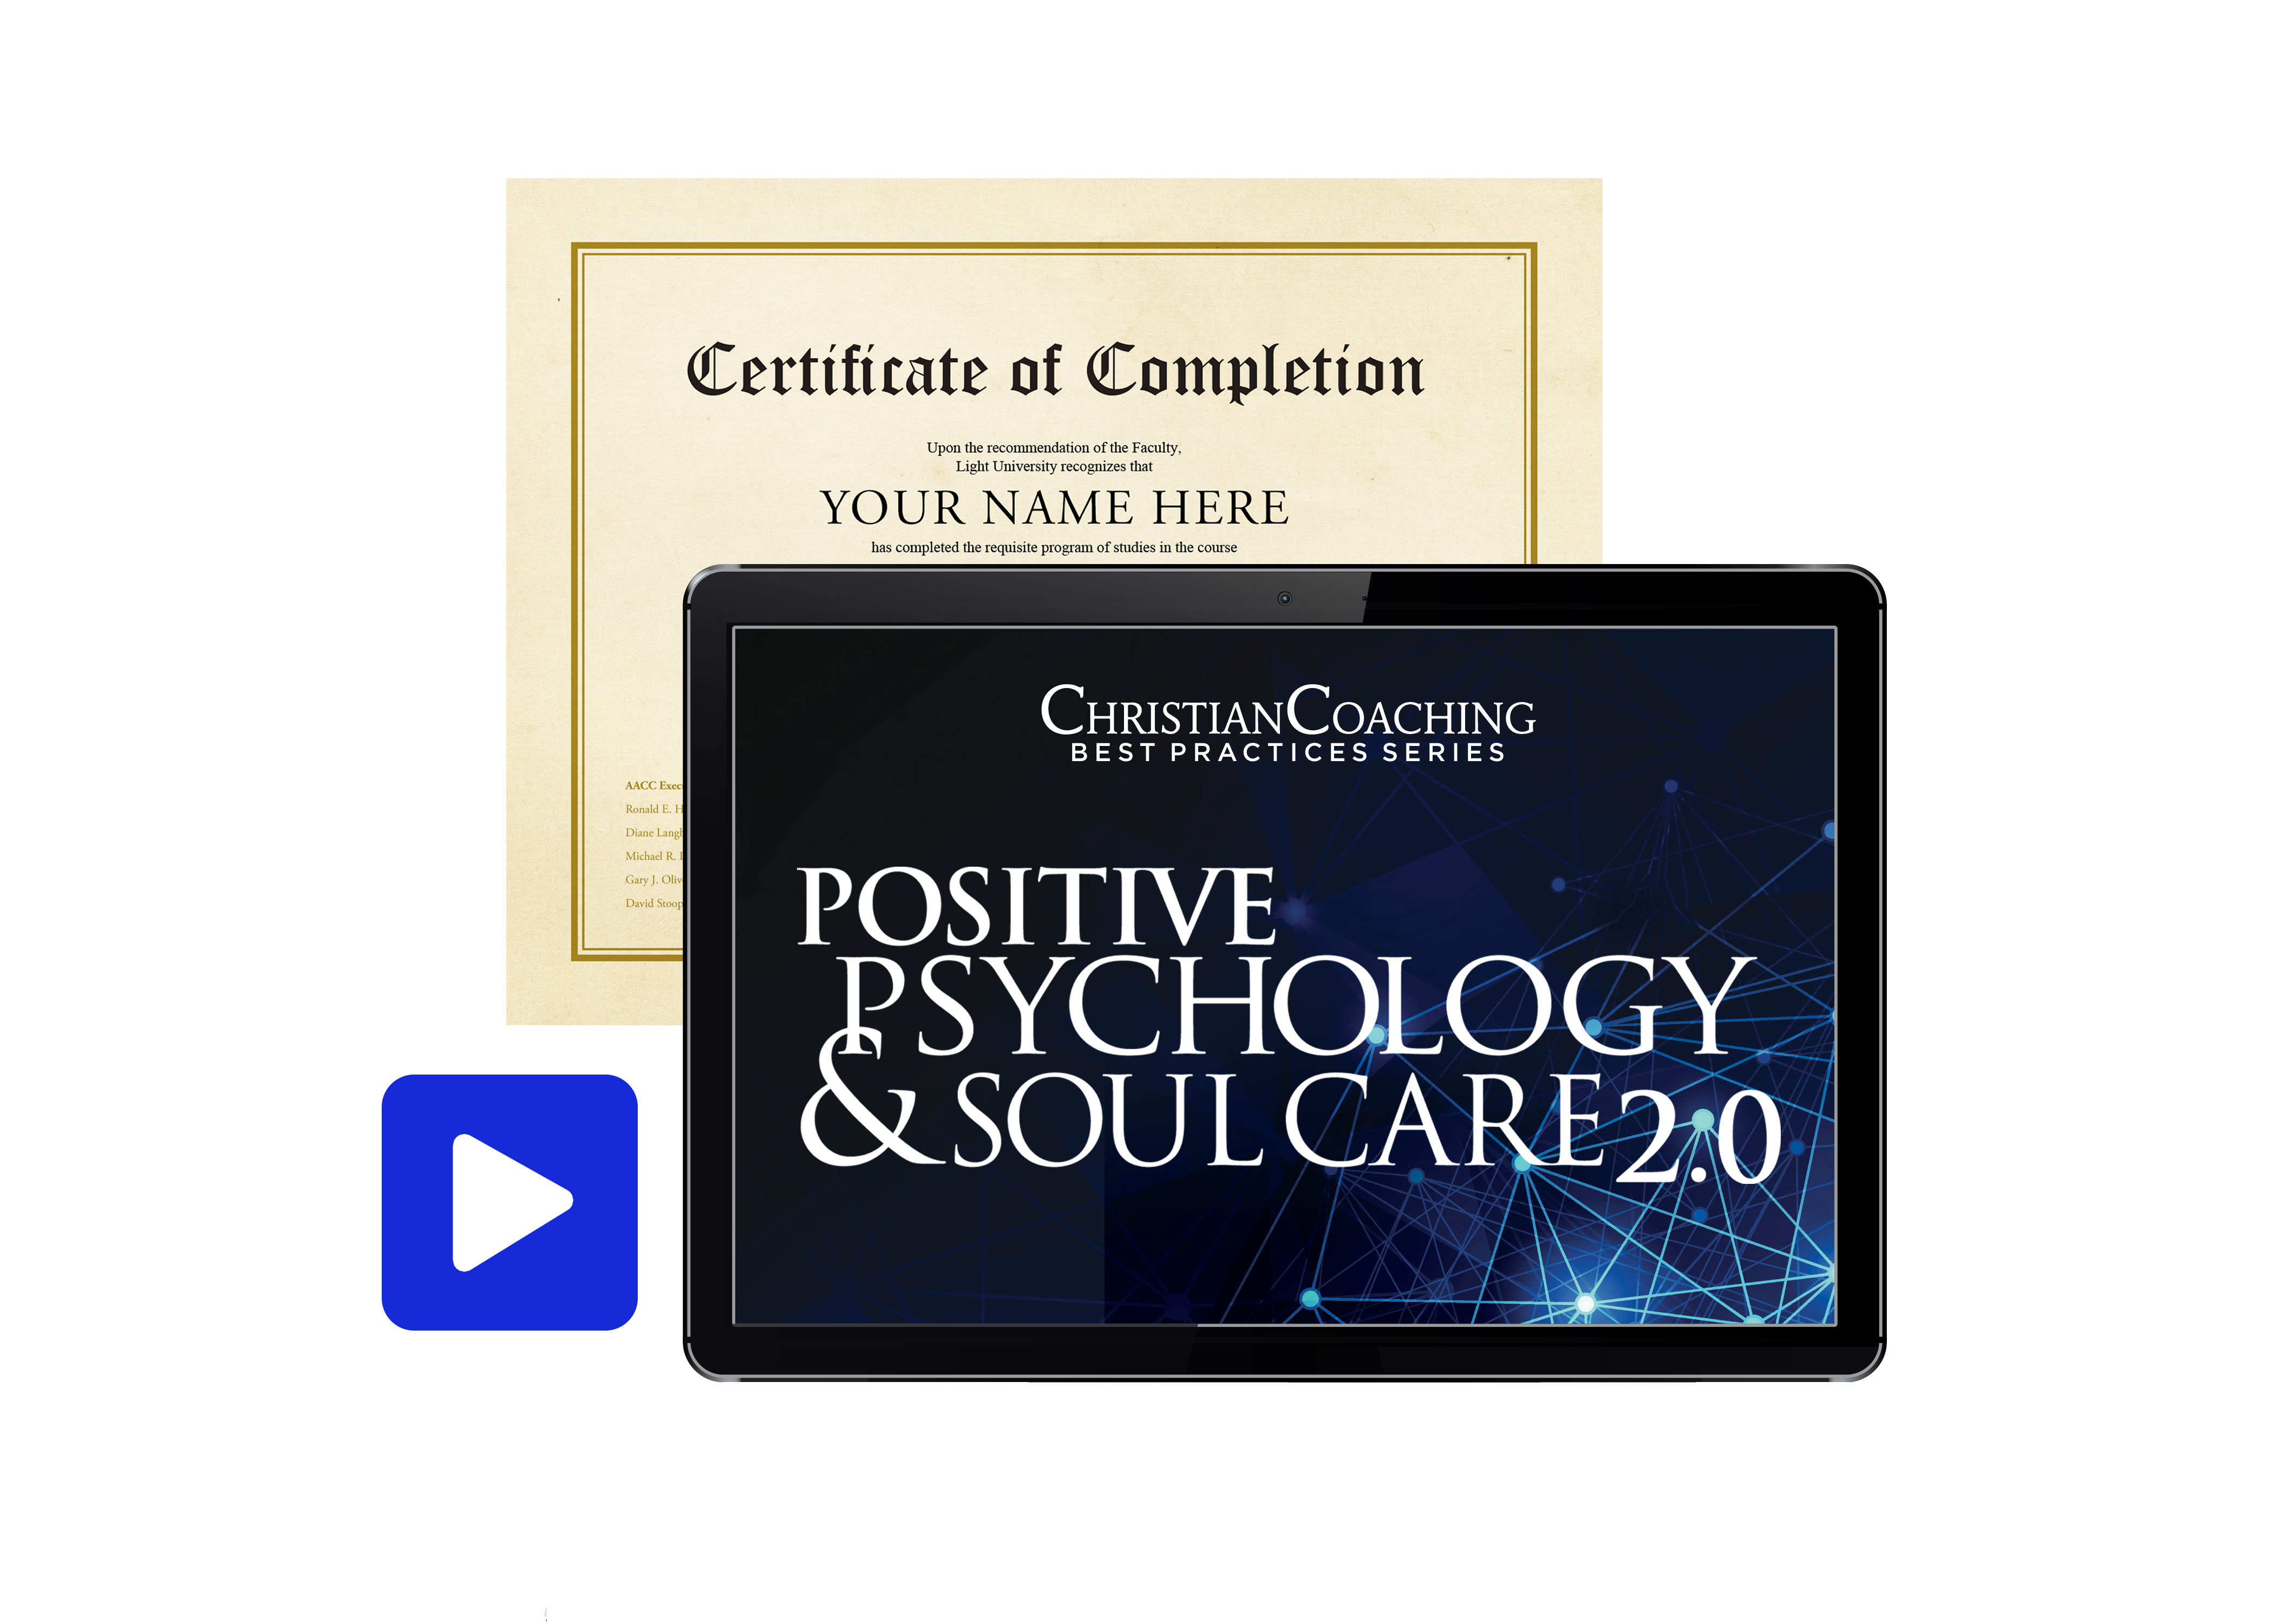 Positive Psychology and Soul Care 2.0